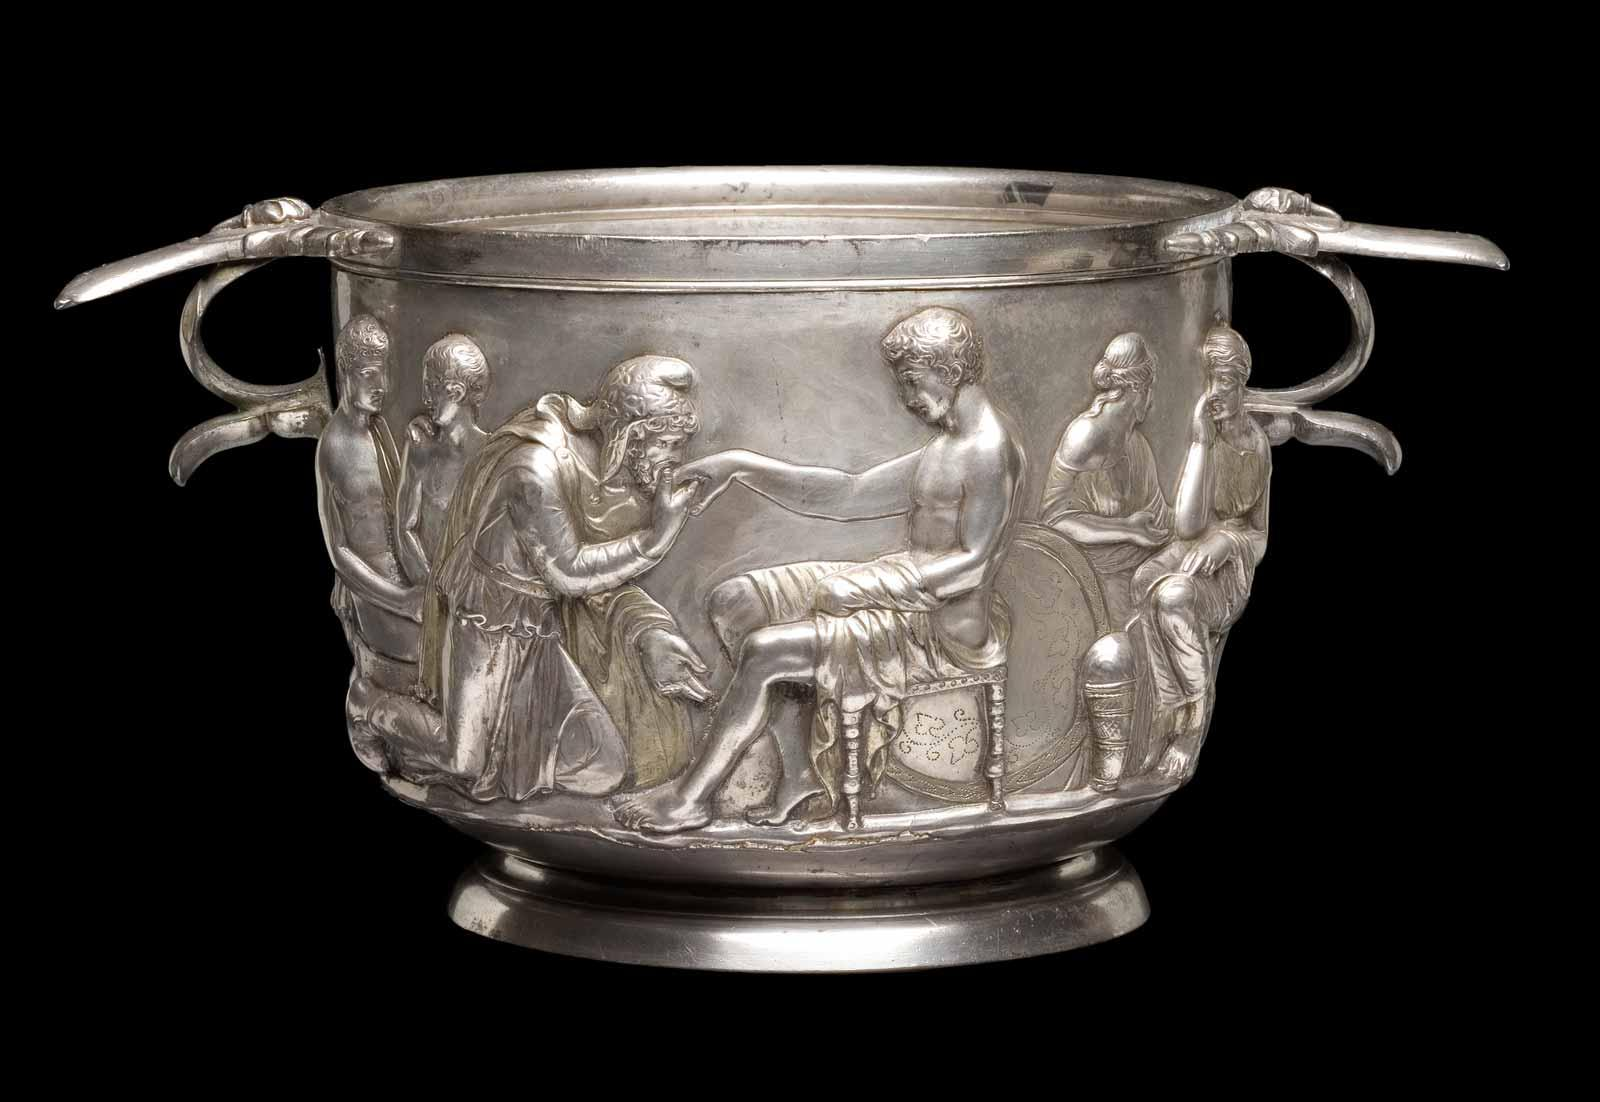 Priam and Achilles, Roman silver cup, 1st century AD.